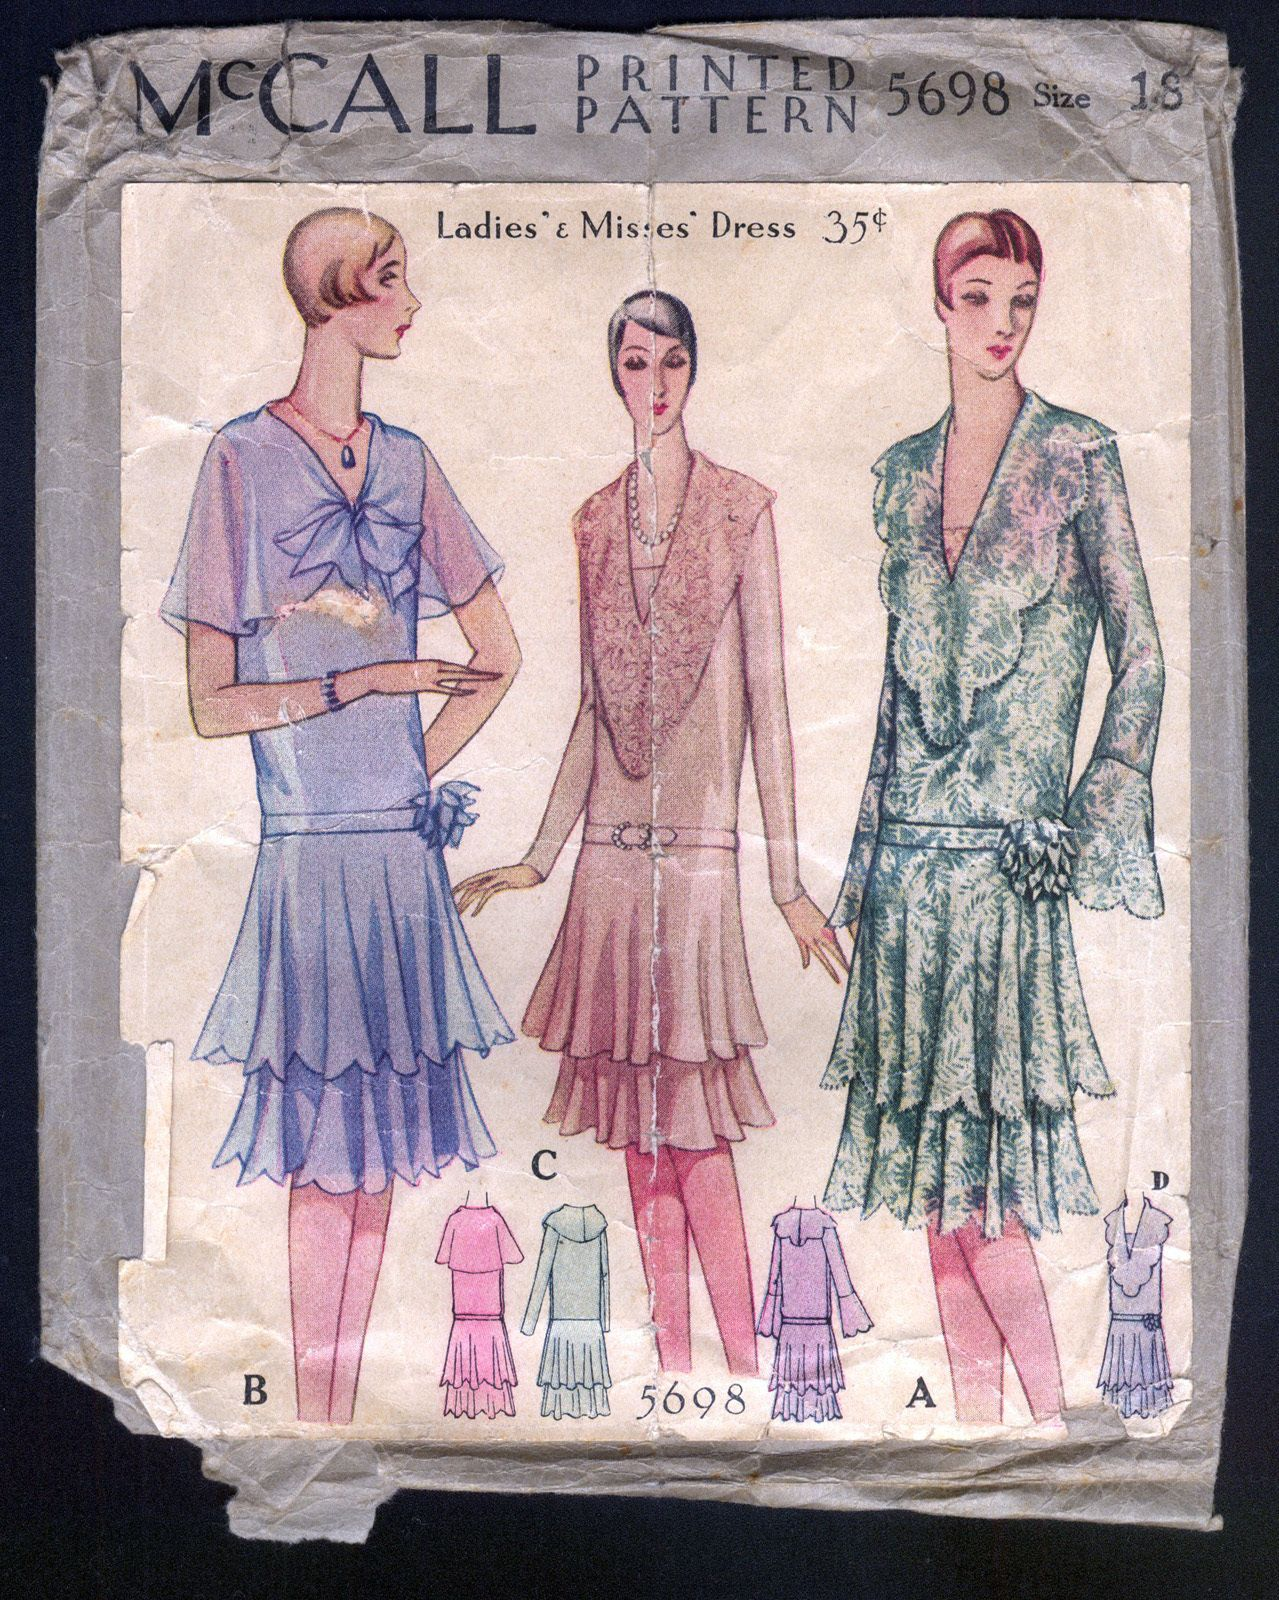 1929 Mccall Pattern Ladies' Dress With Tiered Skirt | eBay ...